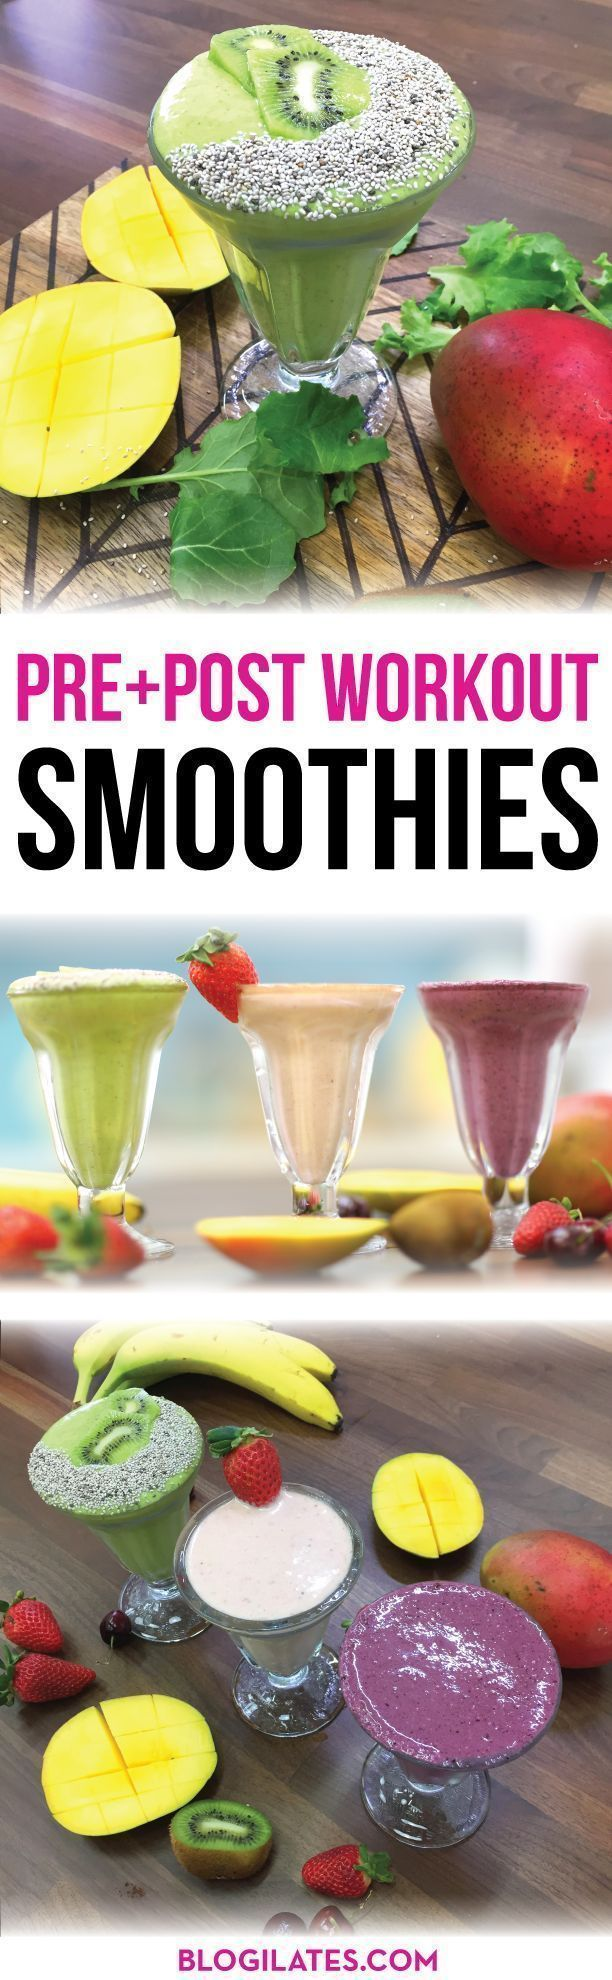 Ever wonder what you should drink before and after your workout? These are the best pre-workout, post-workout, and metabolism boosting smoothies! Learn to make the PB & J Shake, Berry Muffin Smoothie, and the Metabolic Blast Smoothie. http://www.blogilates.com #fastmetabolismdietbeforeandafter #metabolicdietbeforeandafter